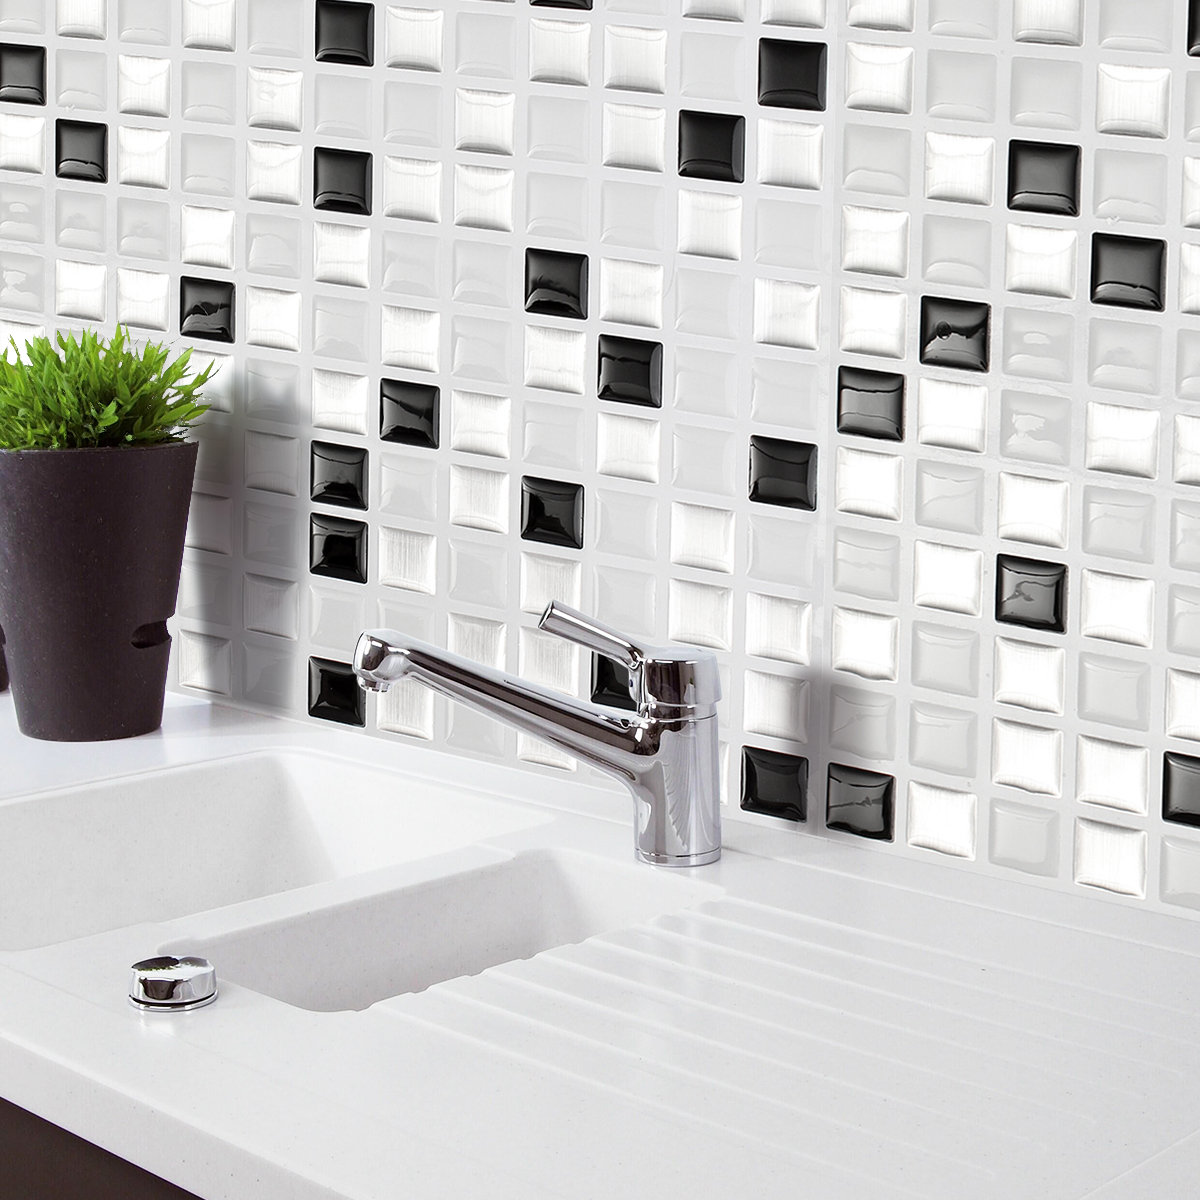 Negro y Blanco y Gris Mosaico 3D pegatinas de pared Backsplash Tile ...